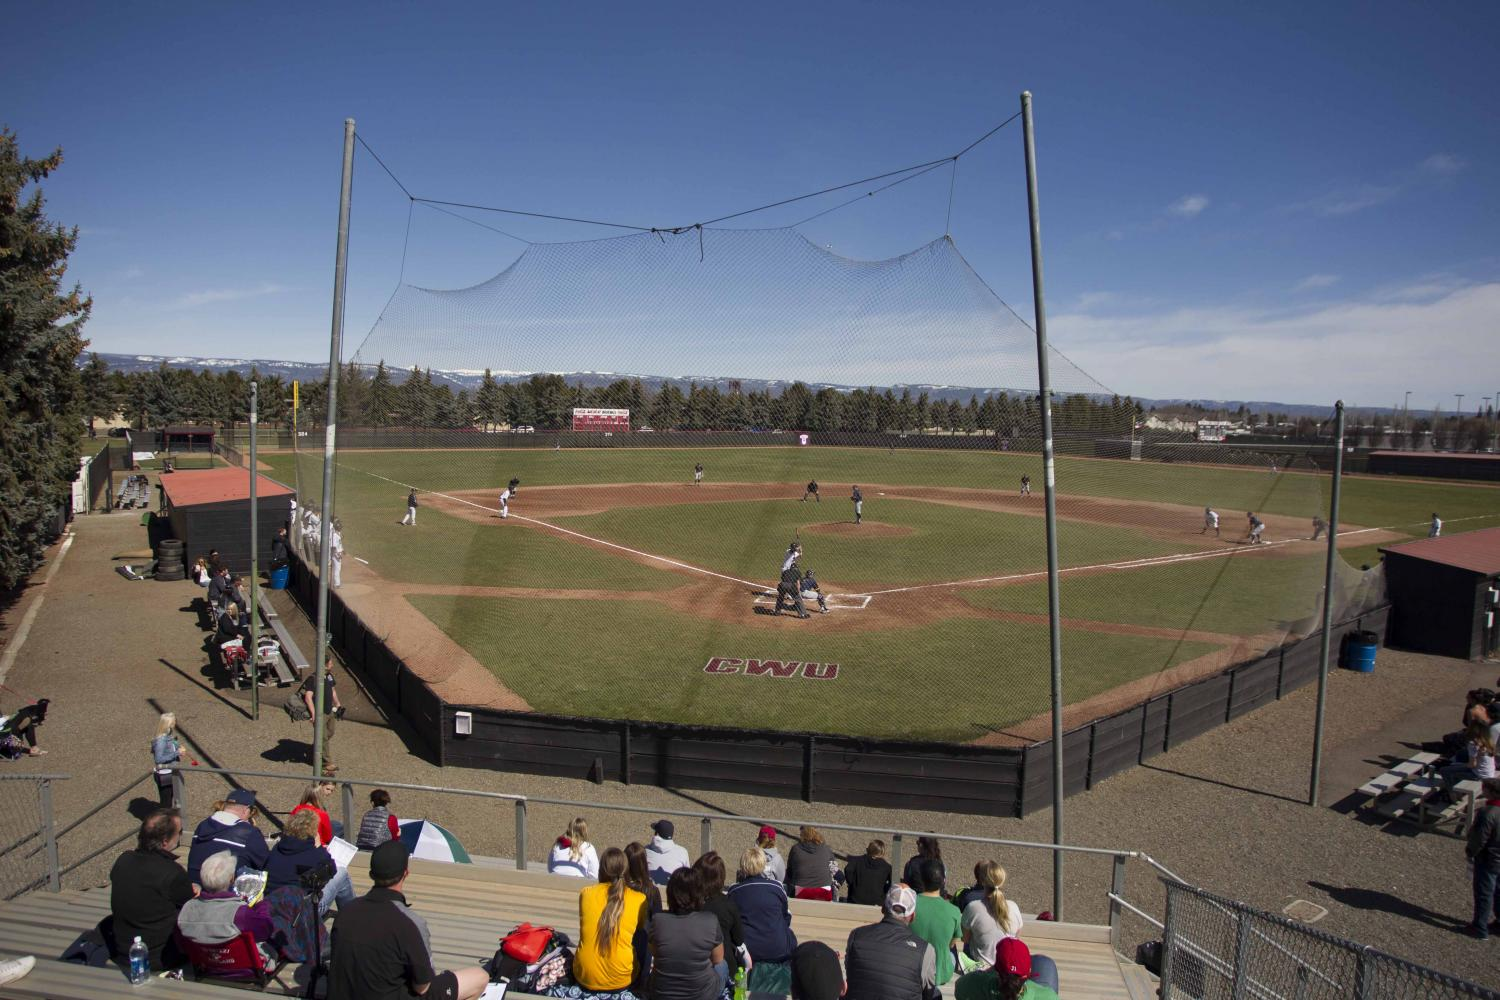 CWU baseball will retreat inside during the winter months as they prepare for their spring season starting in early February.